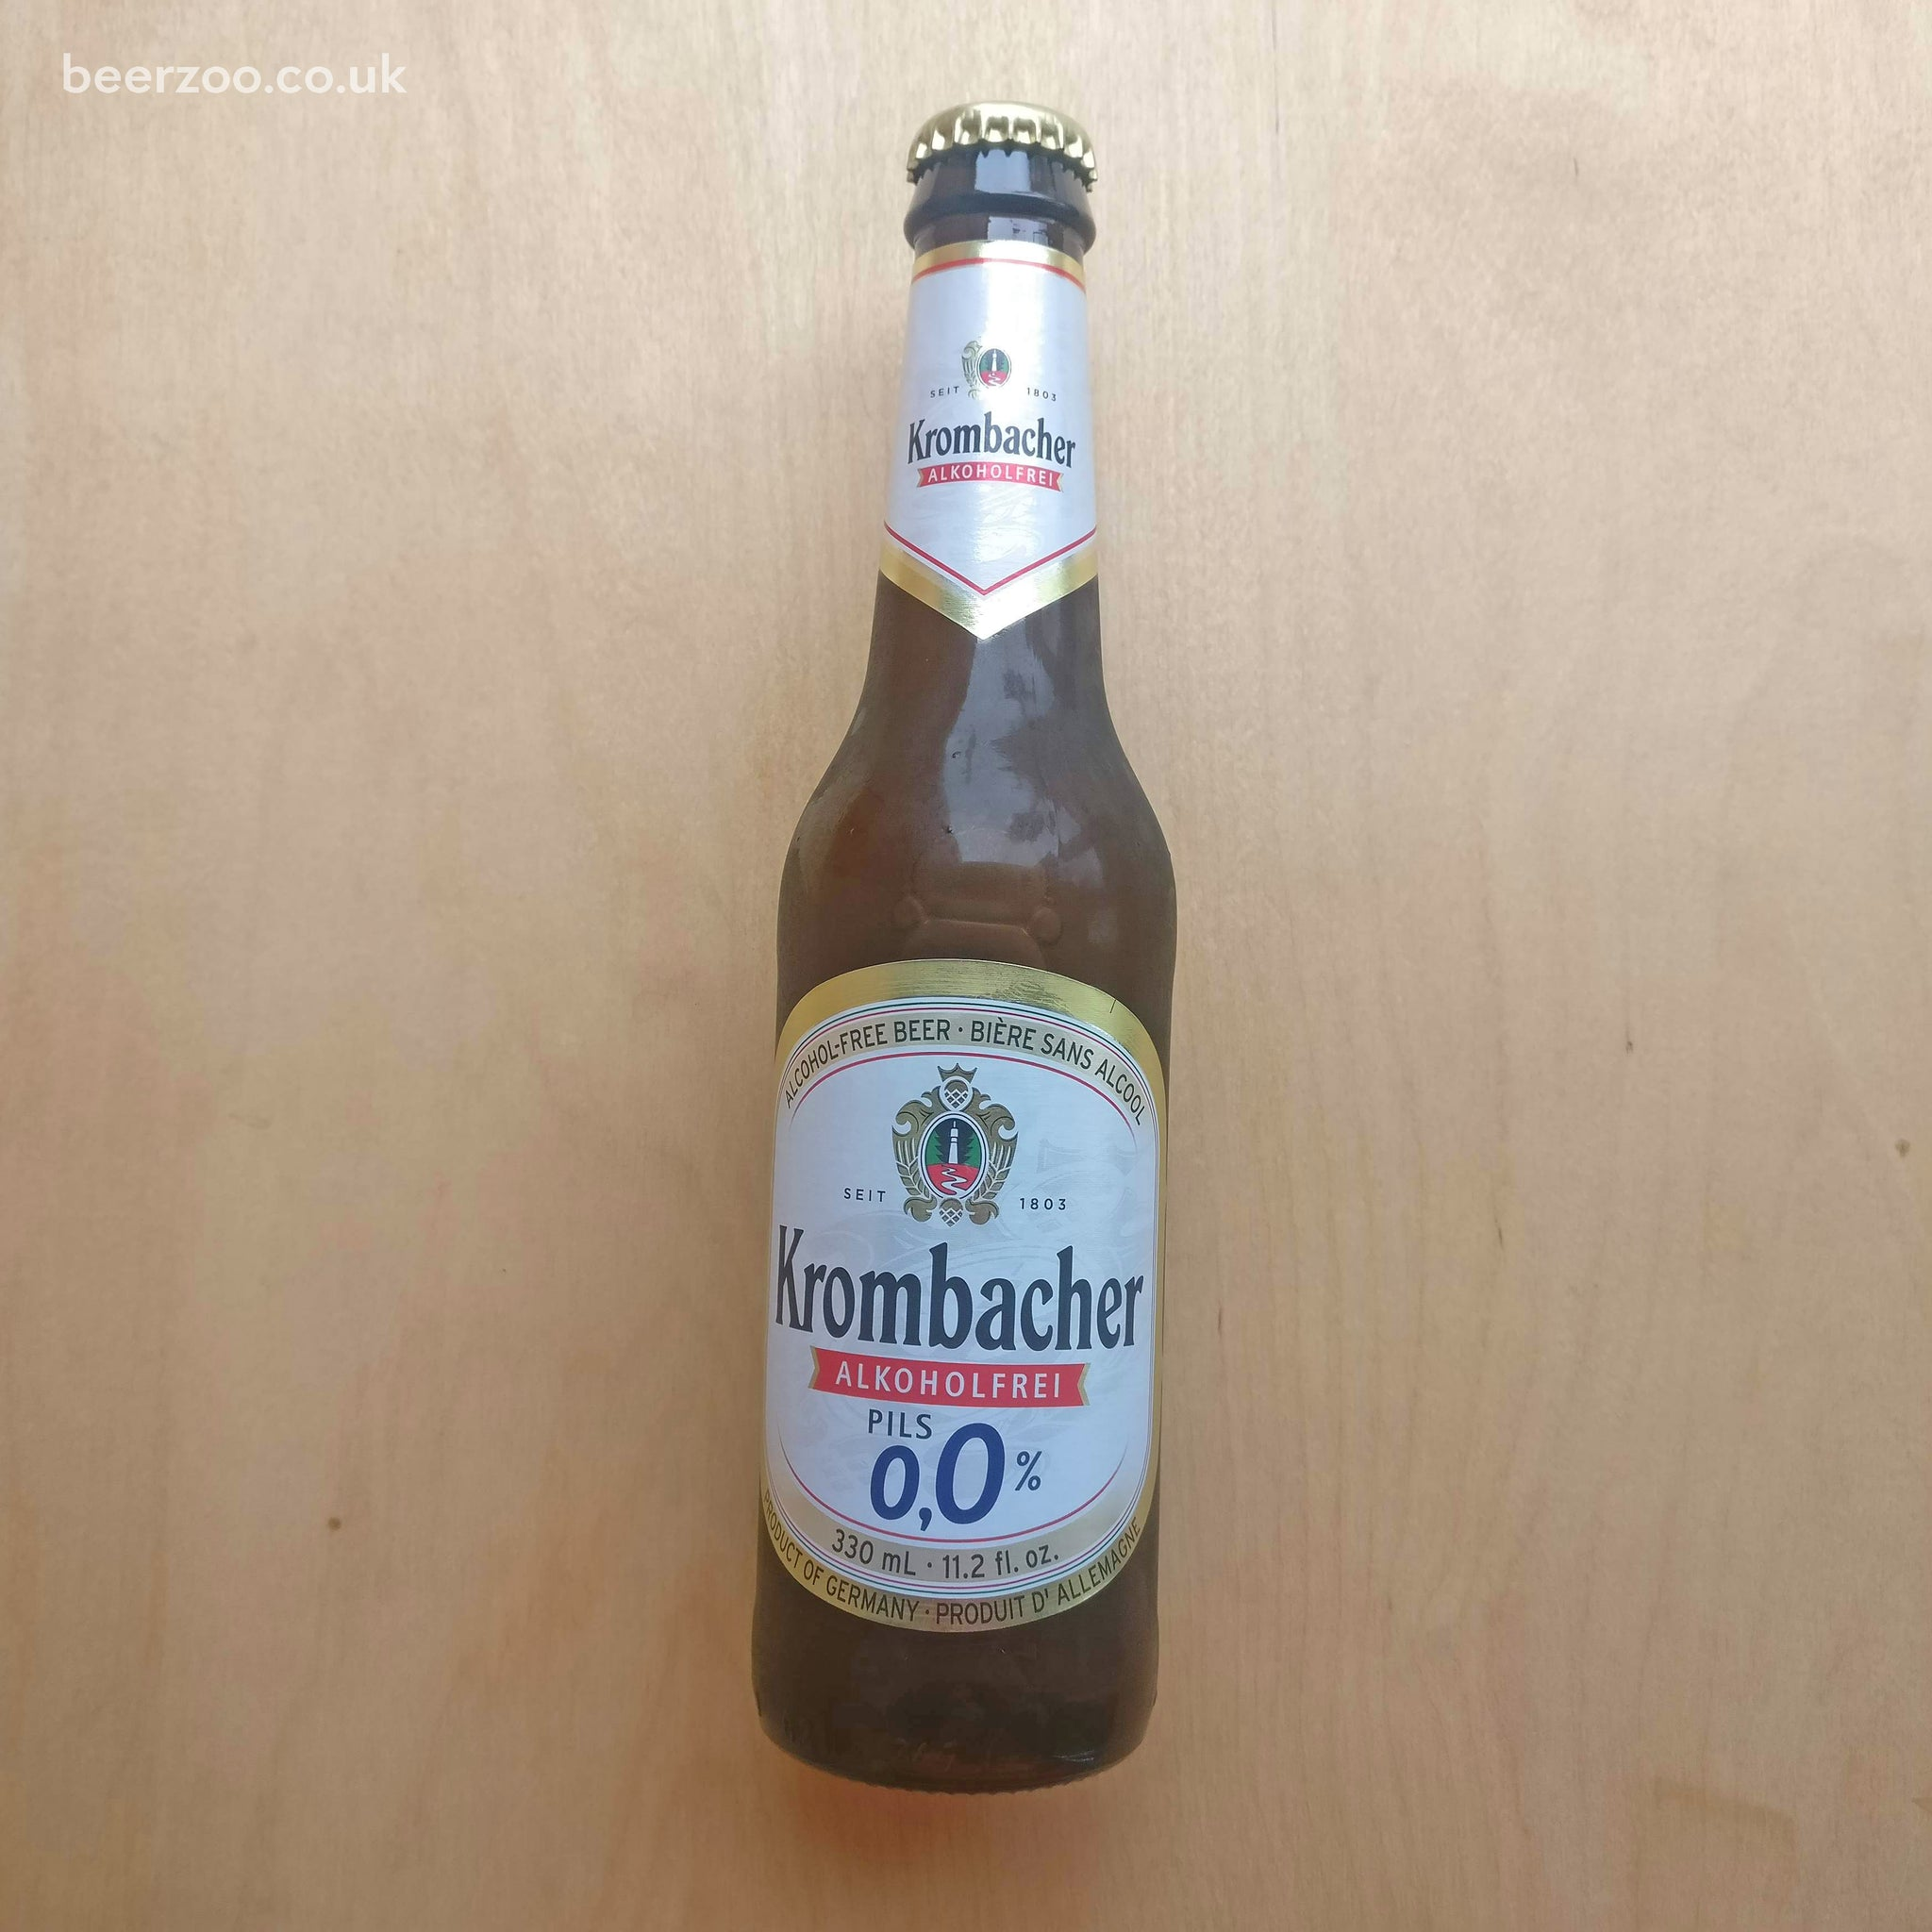 Krombacher - Low Alcohol <0.5% (330ml)